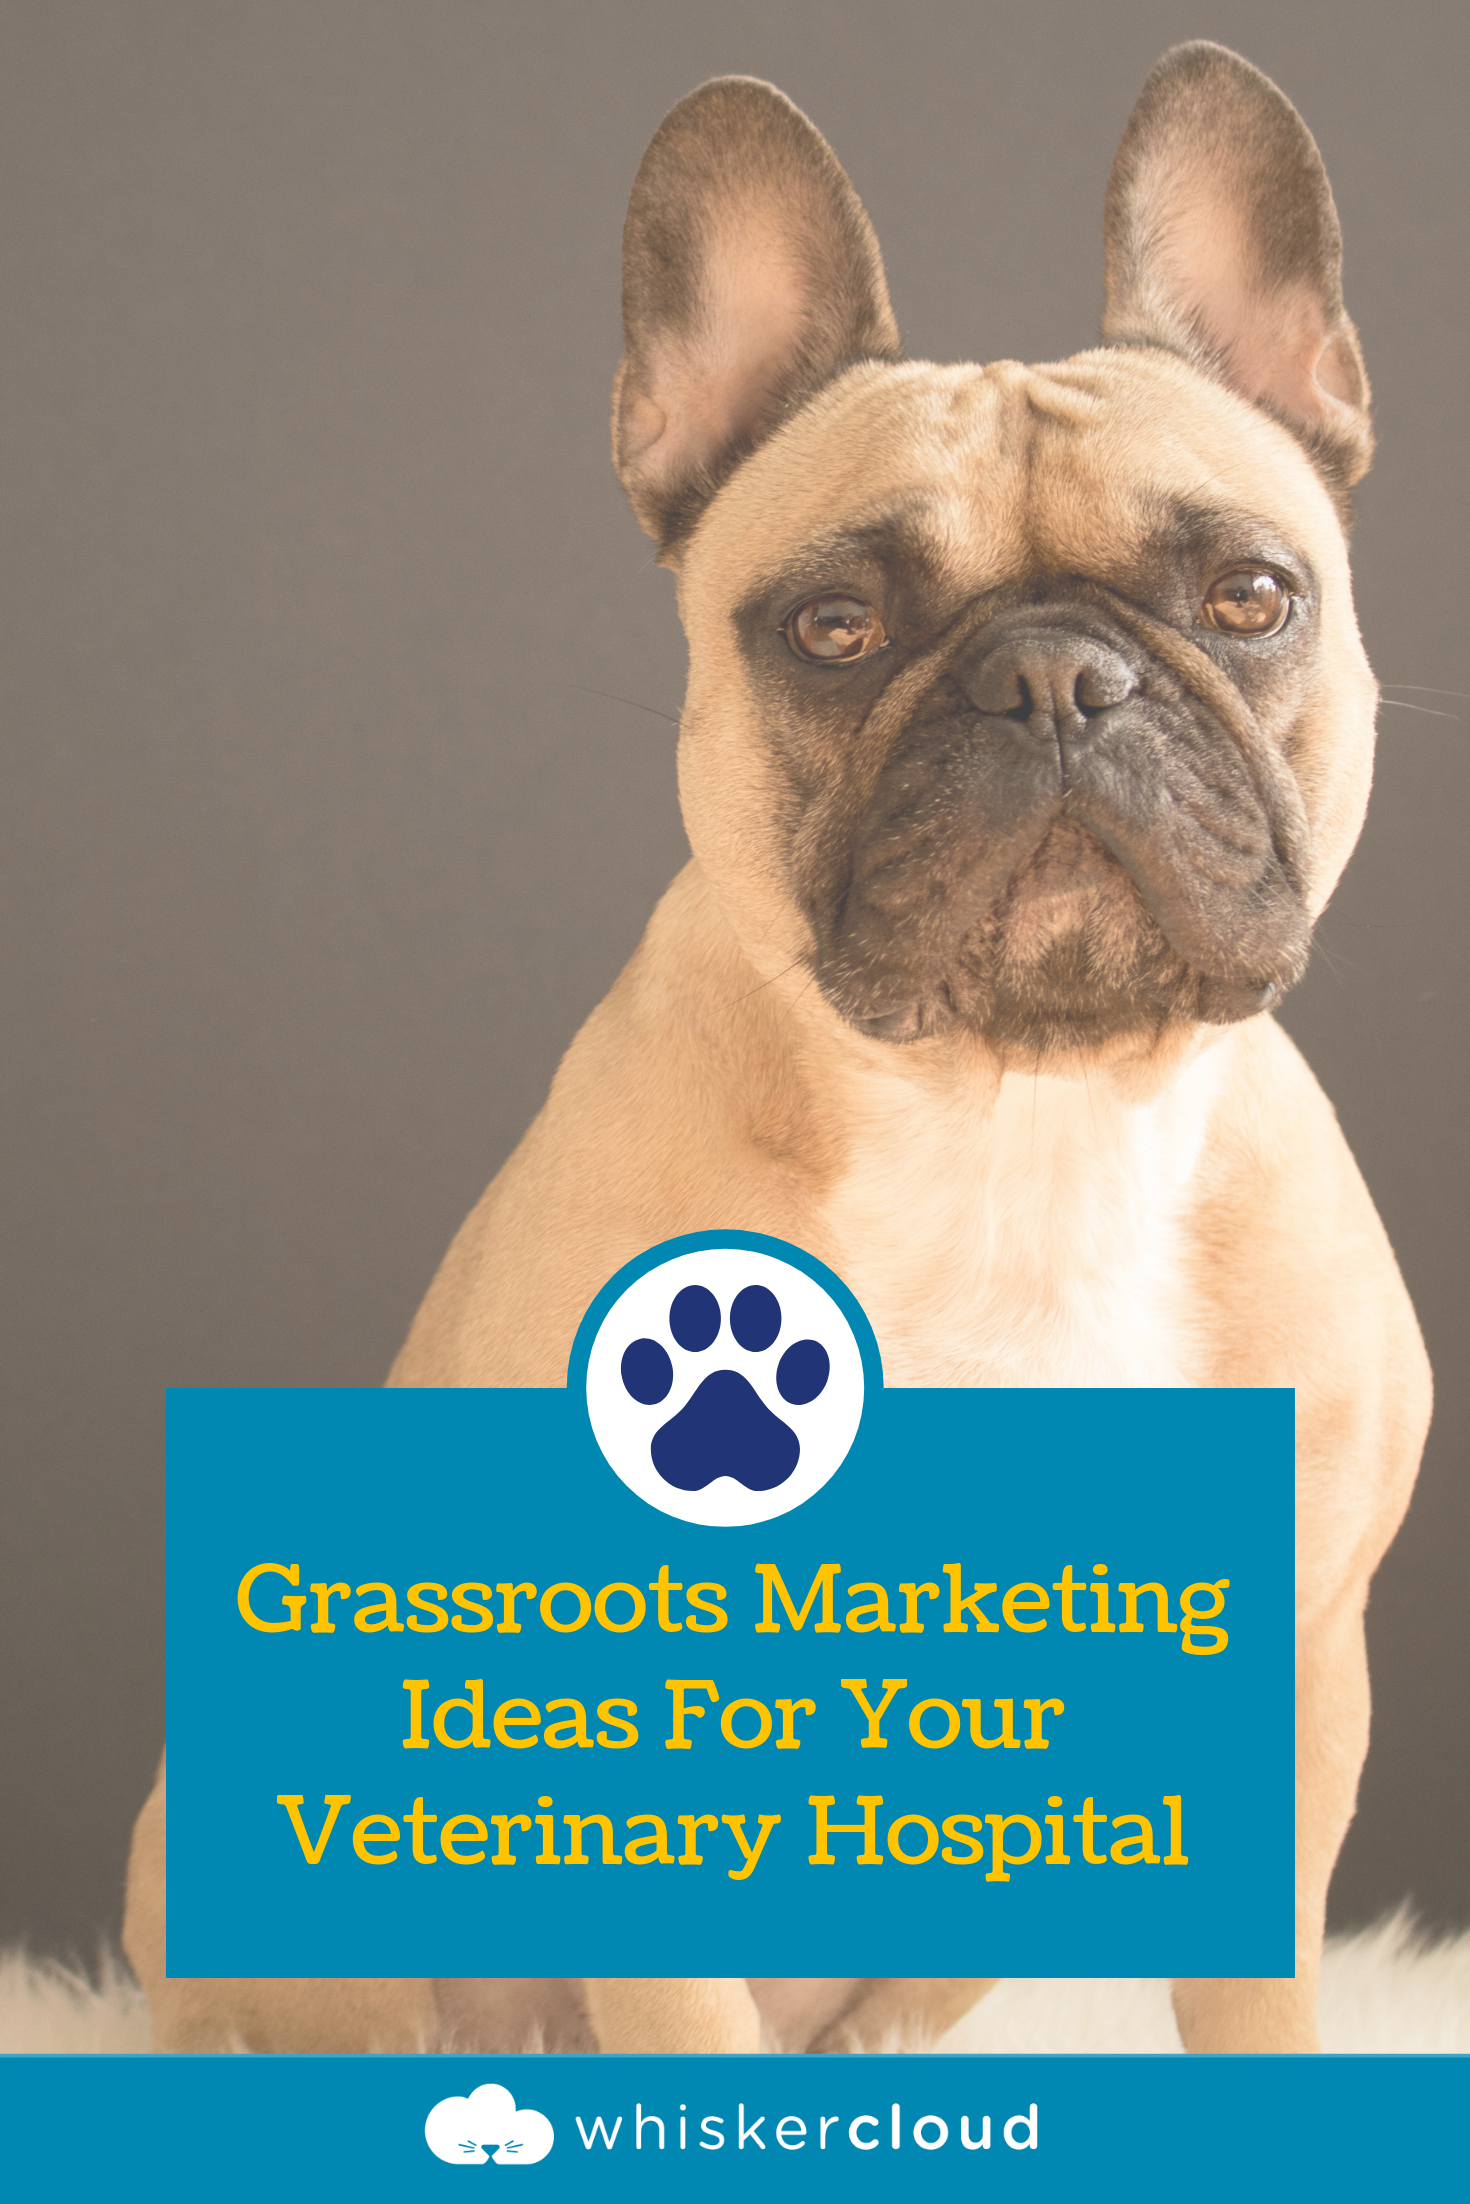 Grassroots Marketing Ideas For Your Veterinary Hospital Veterinary Hospital Hospital Marketing Grassroots Marketing